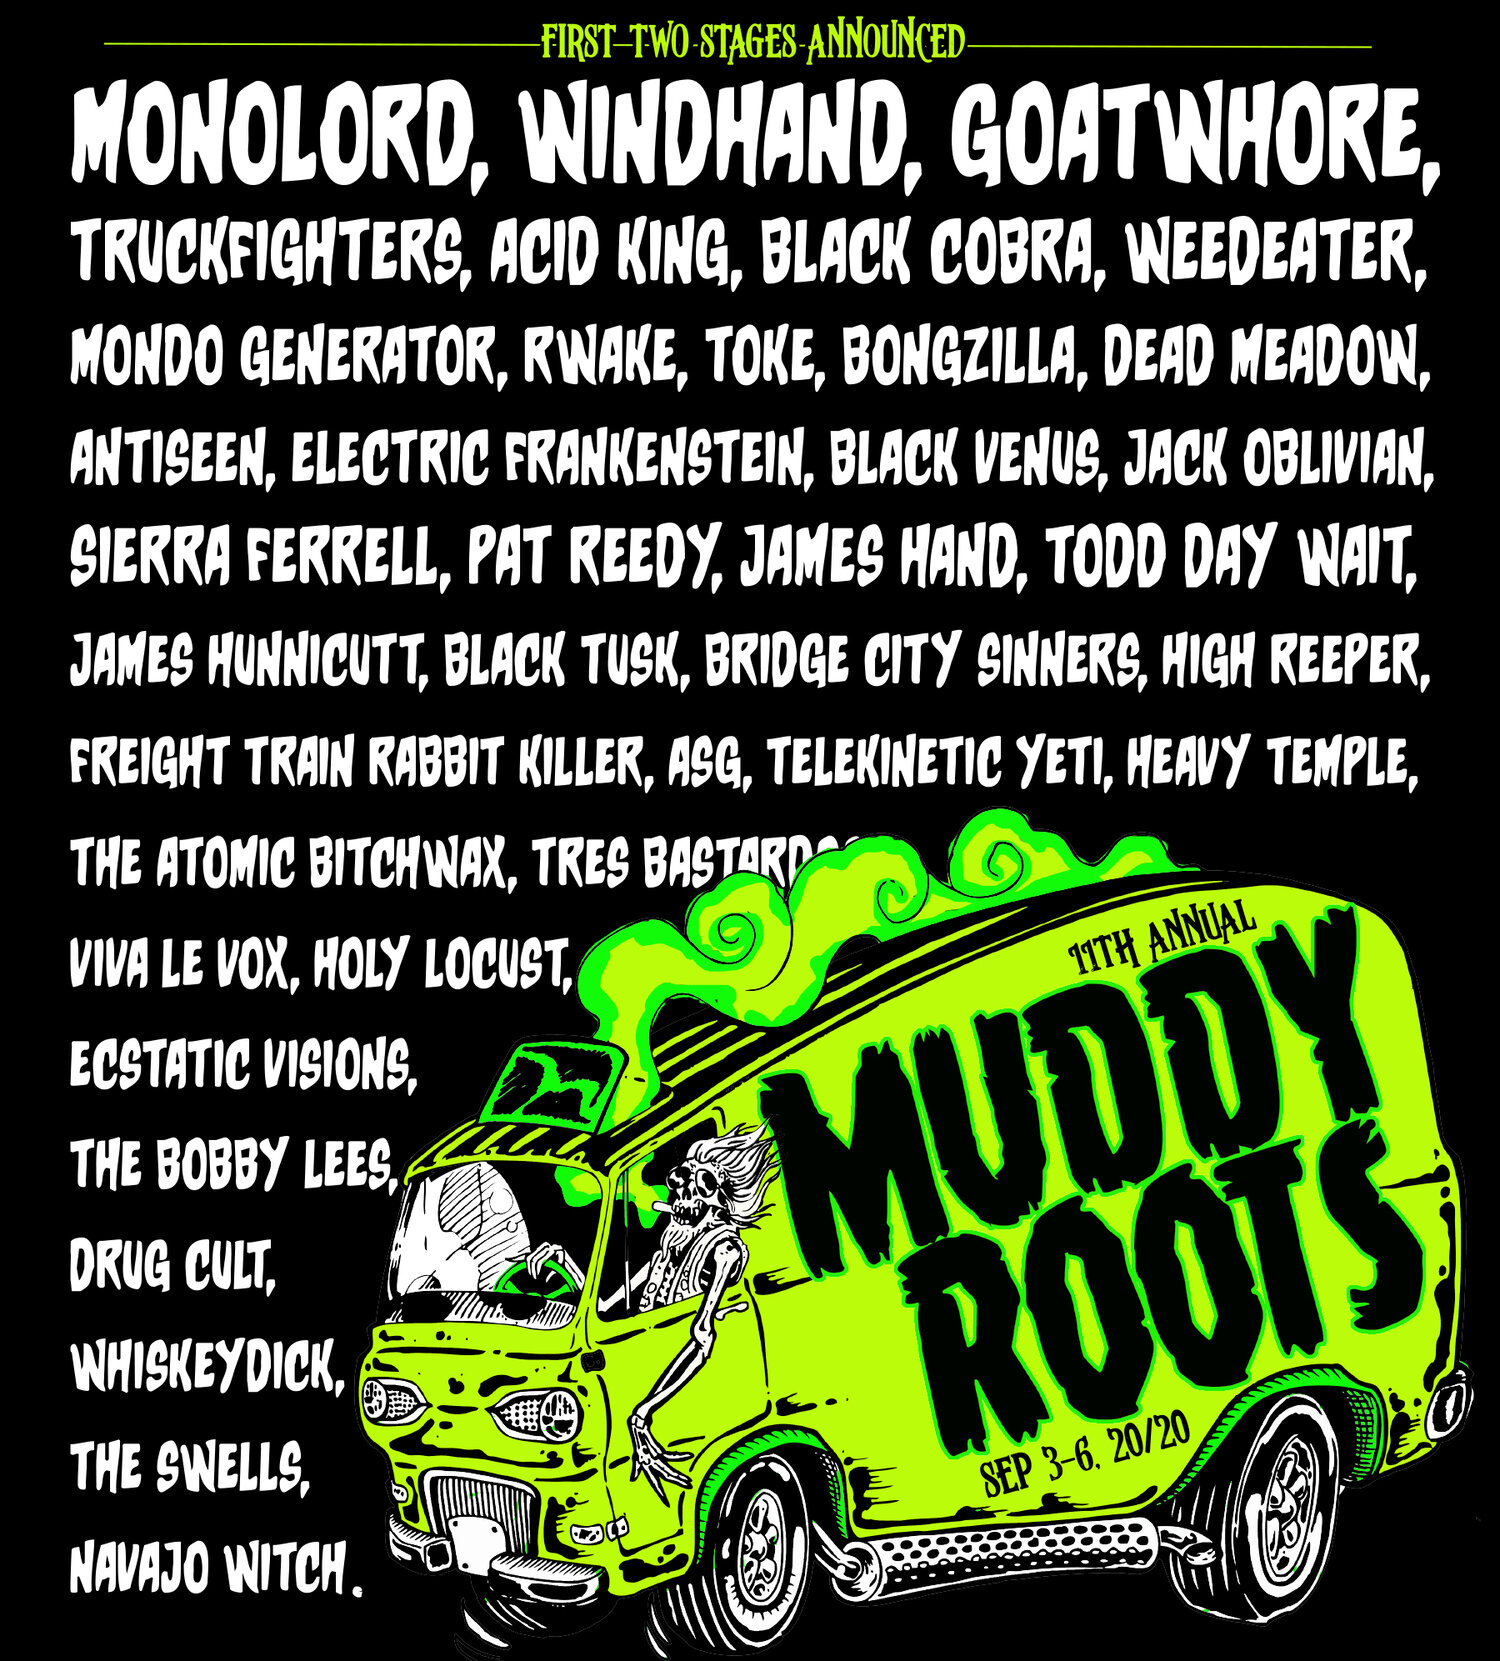 MUDDY ROOTS MUSIC FESTIVAL 2021 [ASG, Weedeater, Th Legendary Shack Shackers, Joe Buck Yourself...] - Página 10 MRMF+2020+FIRS+WAVE+sq